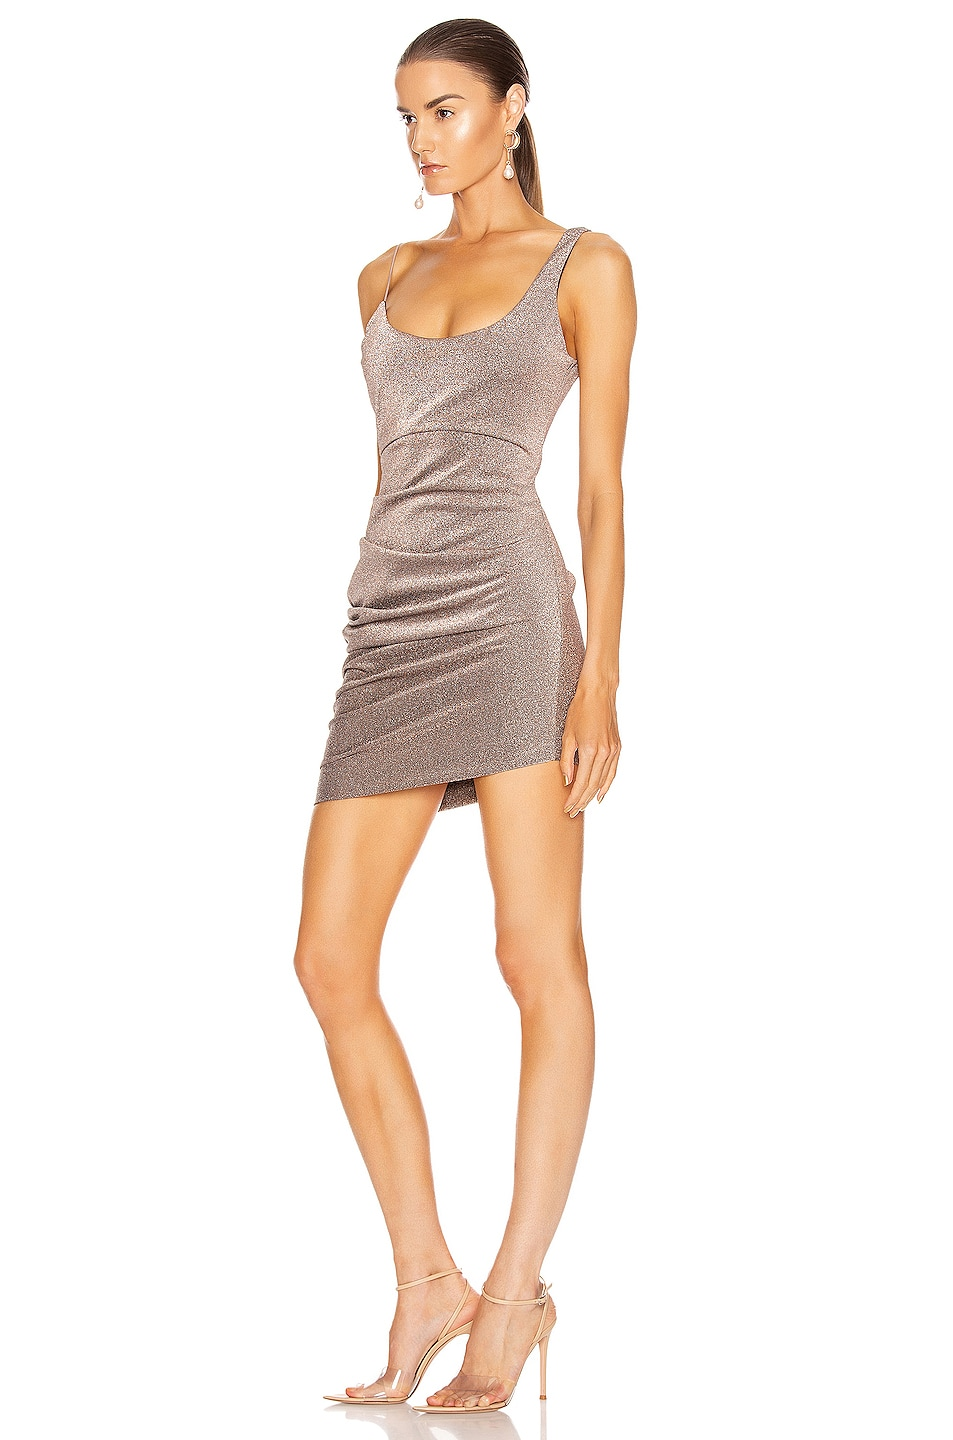 Image 3 of ALIX NYC Emmons Dress in Mercury Glitter